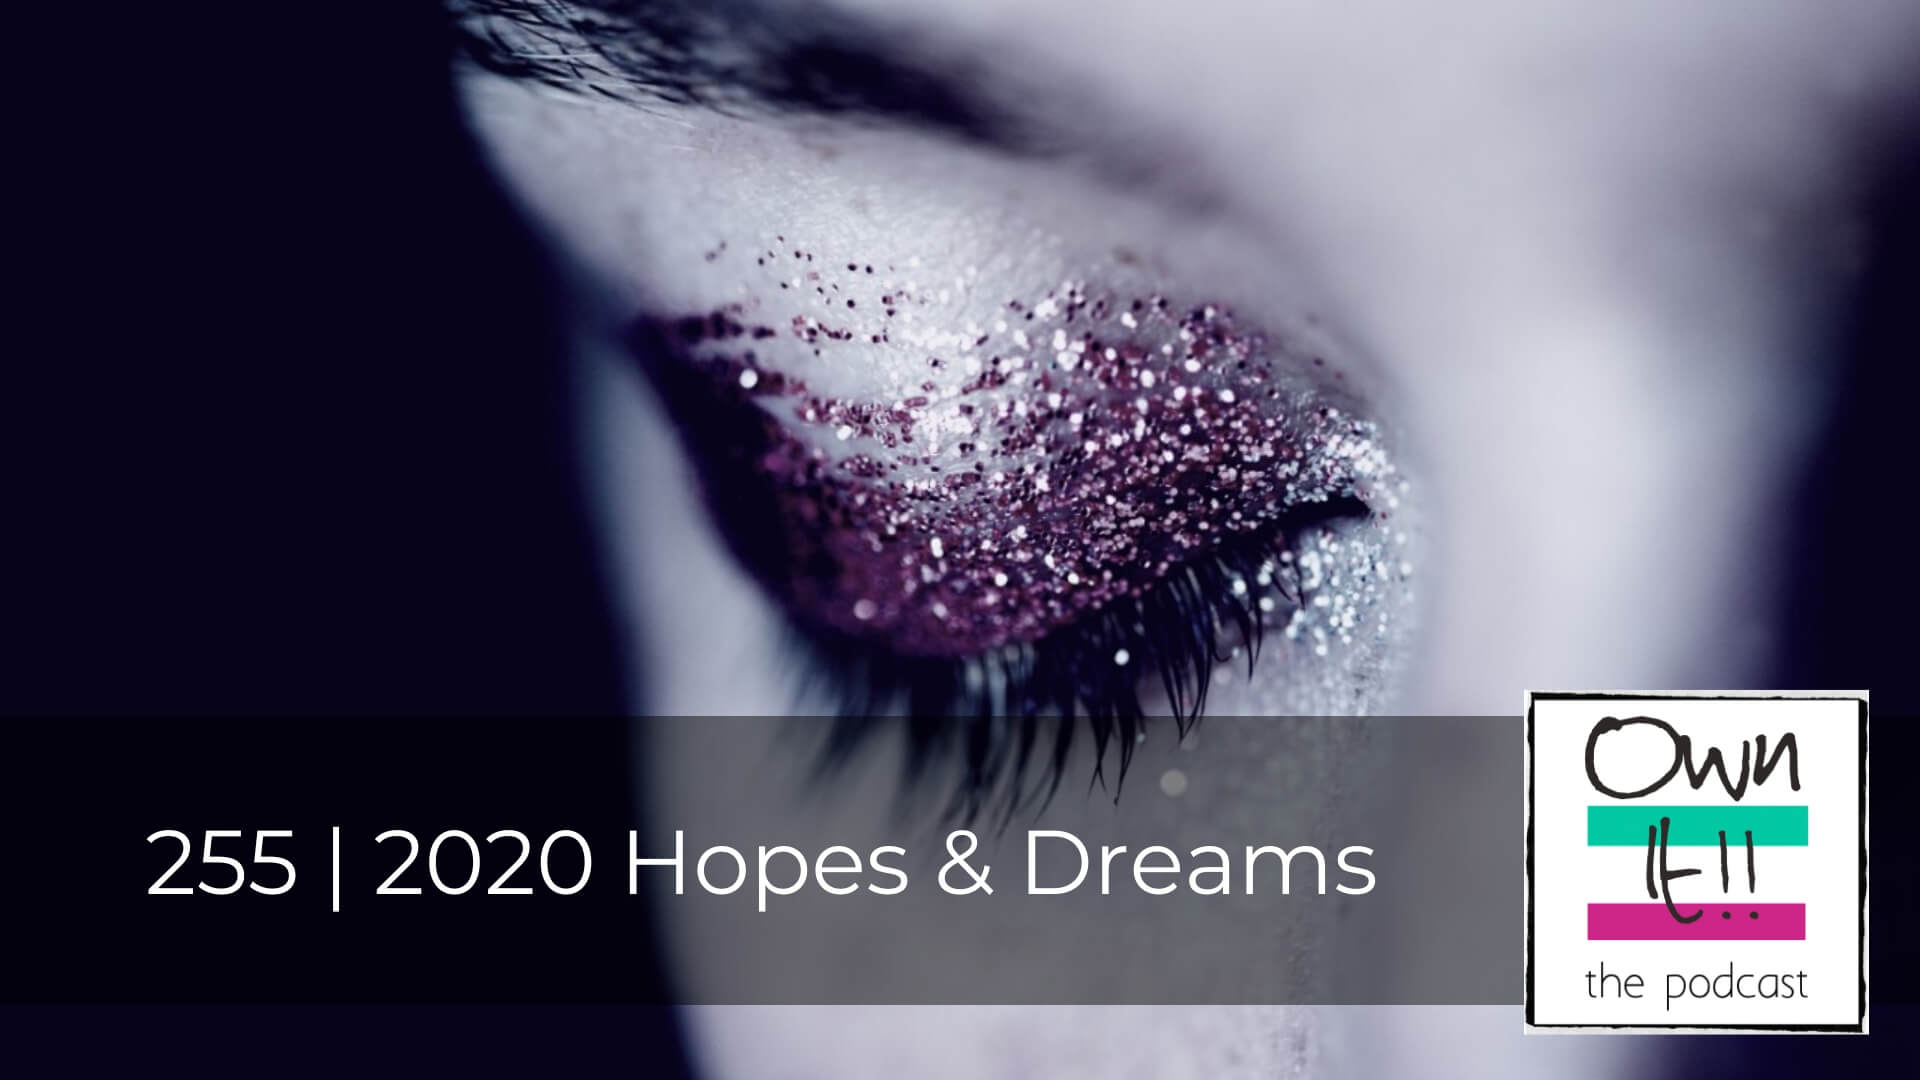 Own It! 255 | 2020 Hopes & Dreams